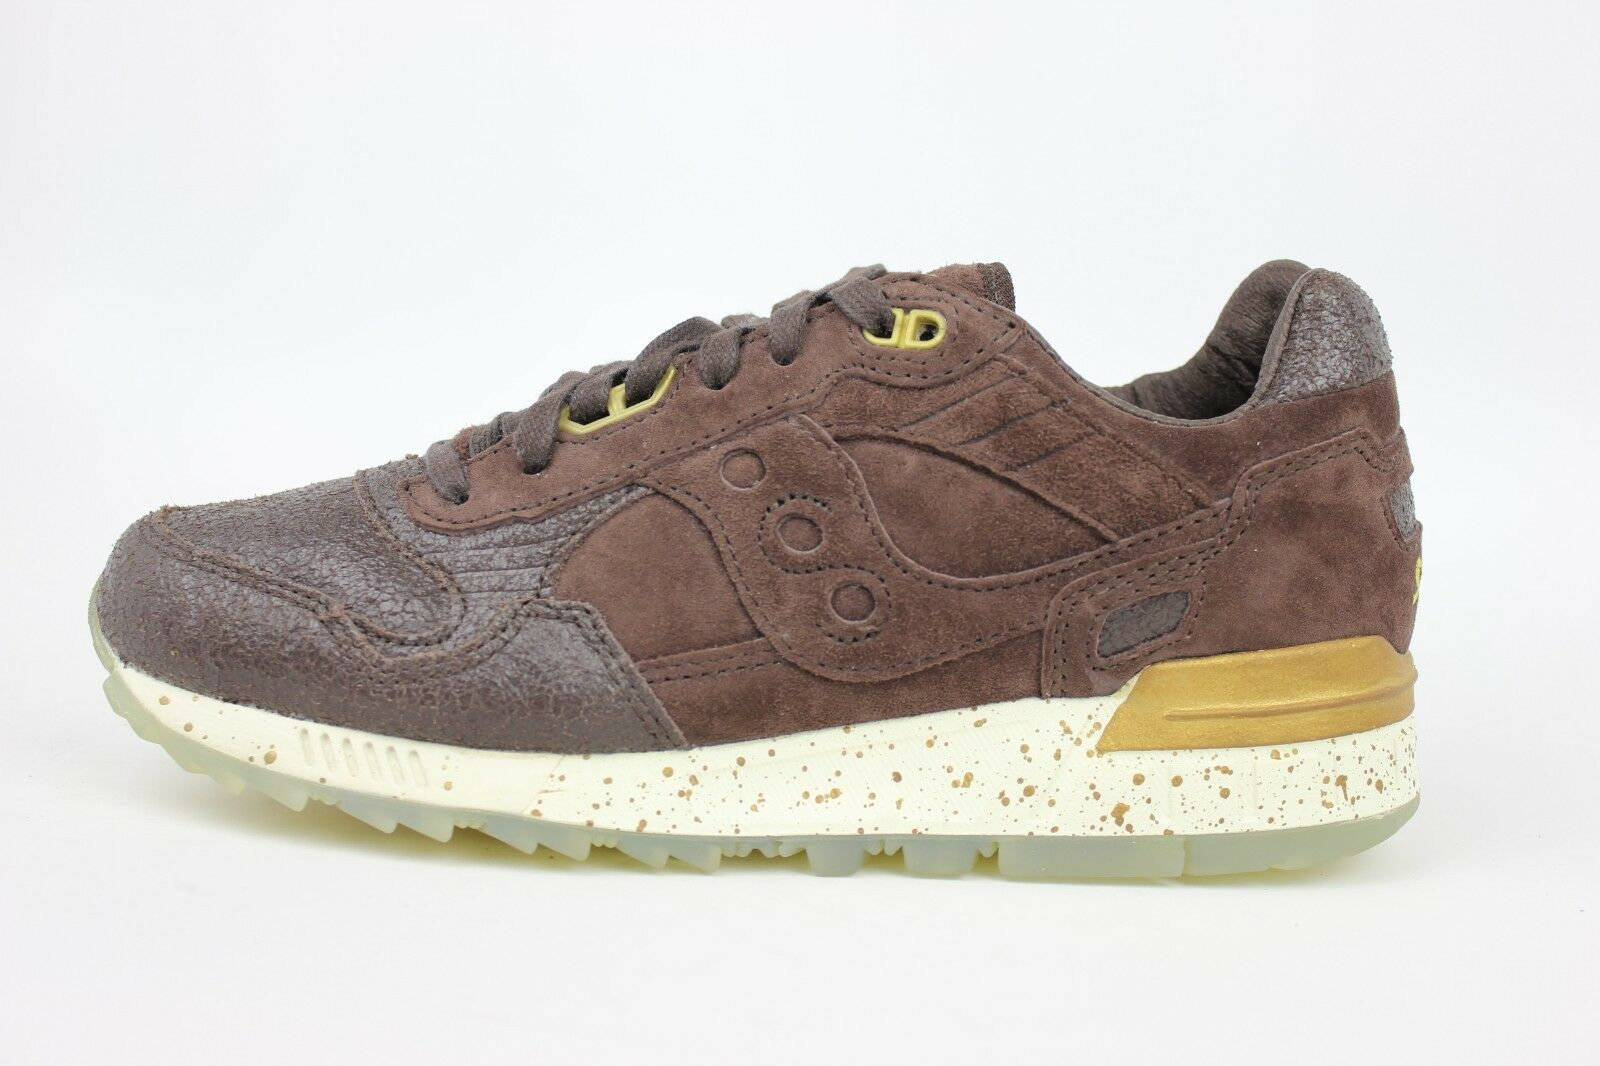 SAUCONY SHADOW 5000 BROWN CHOCOLATE OFF WHITE GOLD BROWN MENS SNEAKERS S70311-2